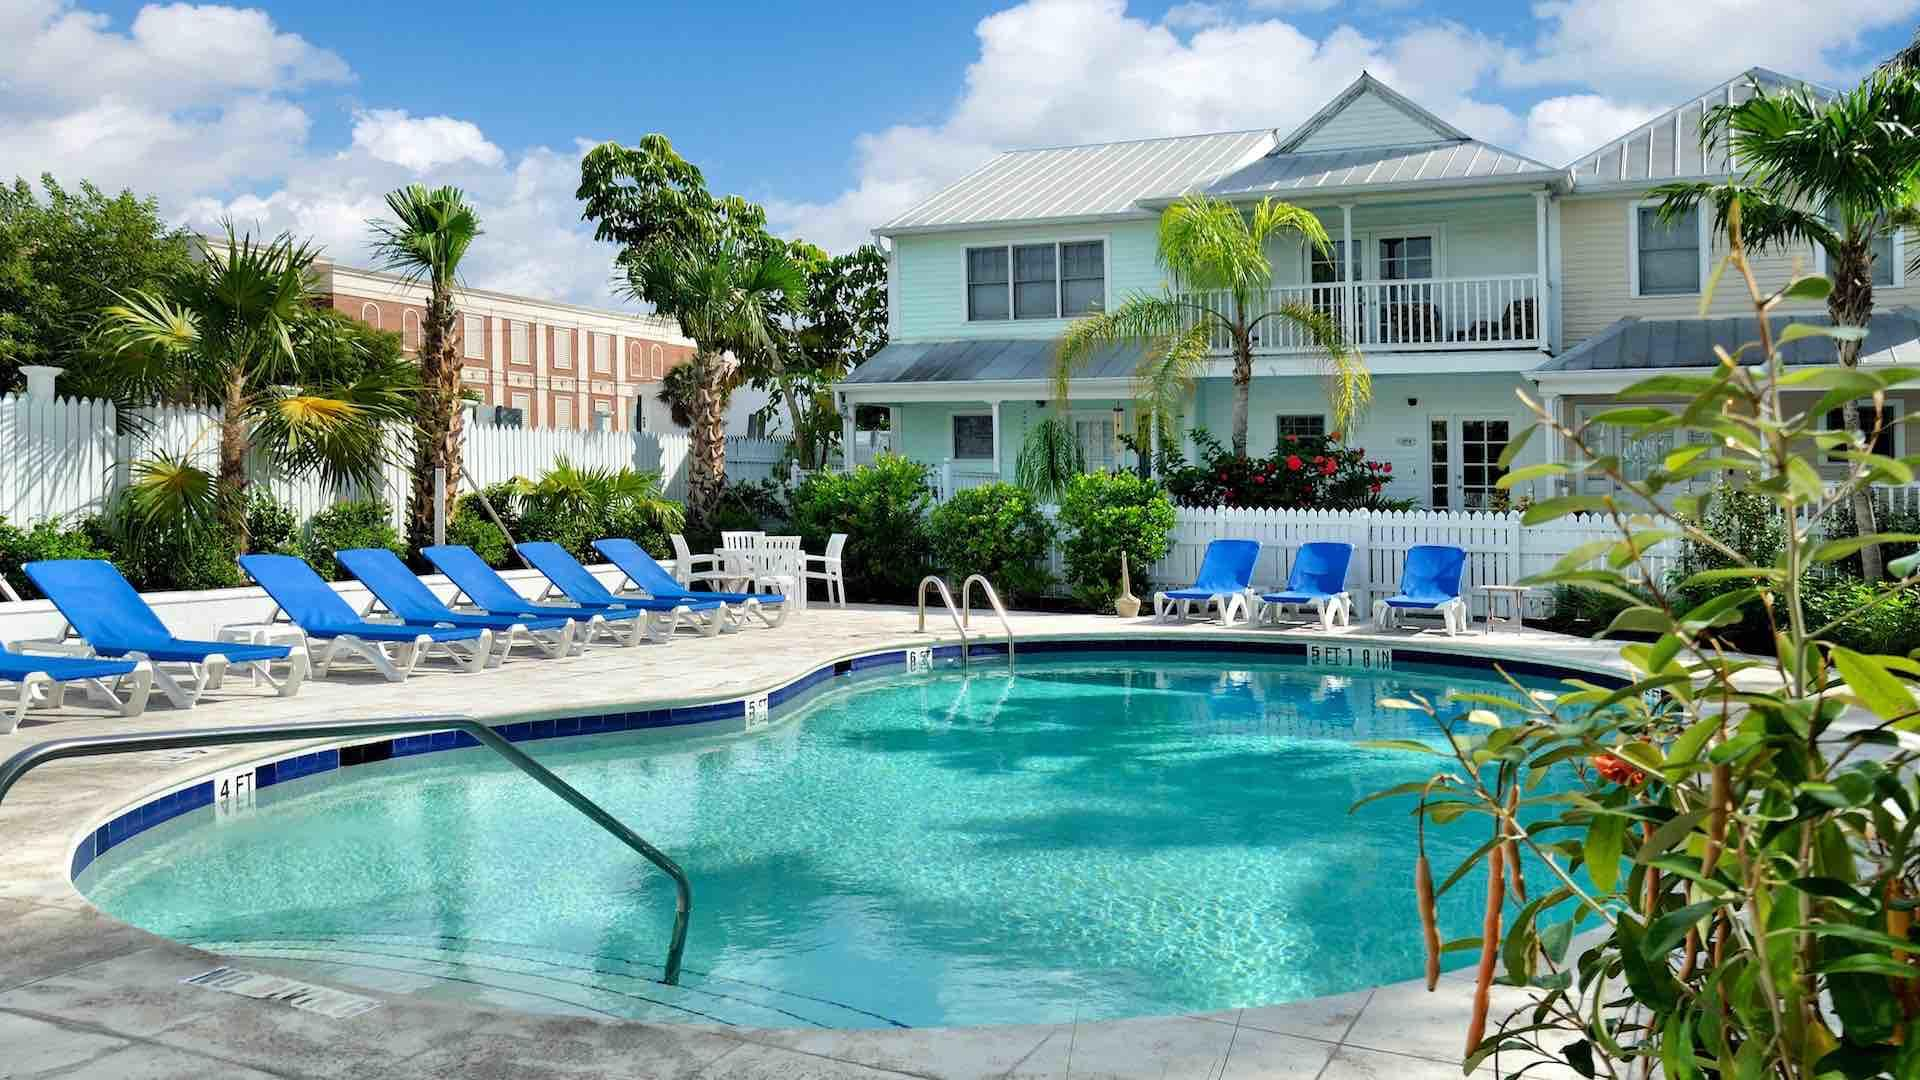 The community pool is just around the corner from your townhouse...